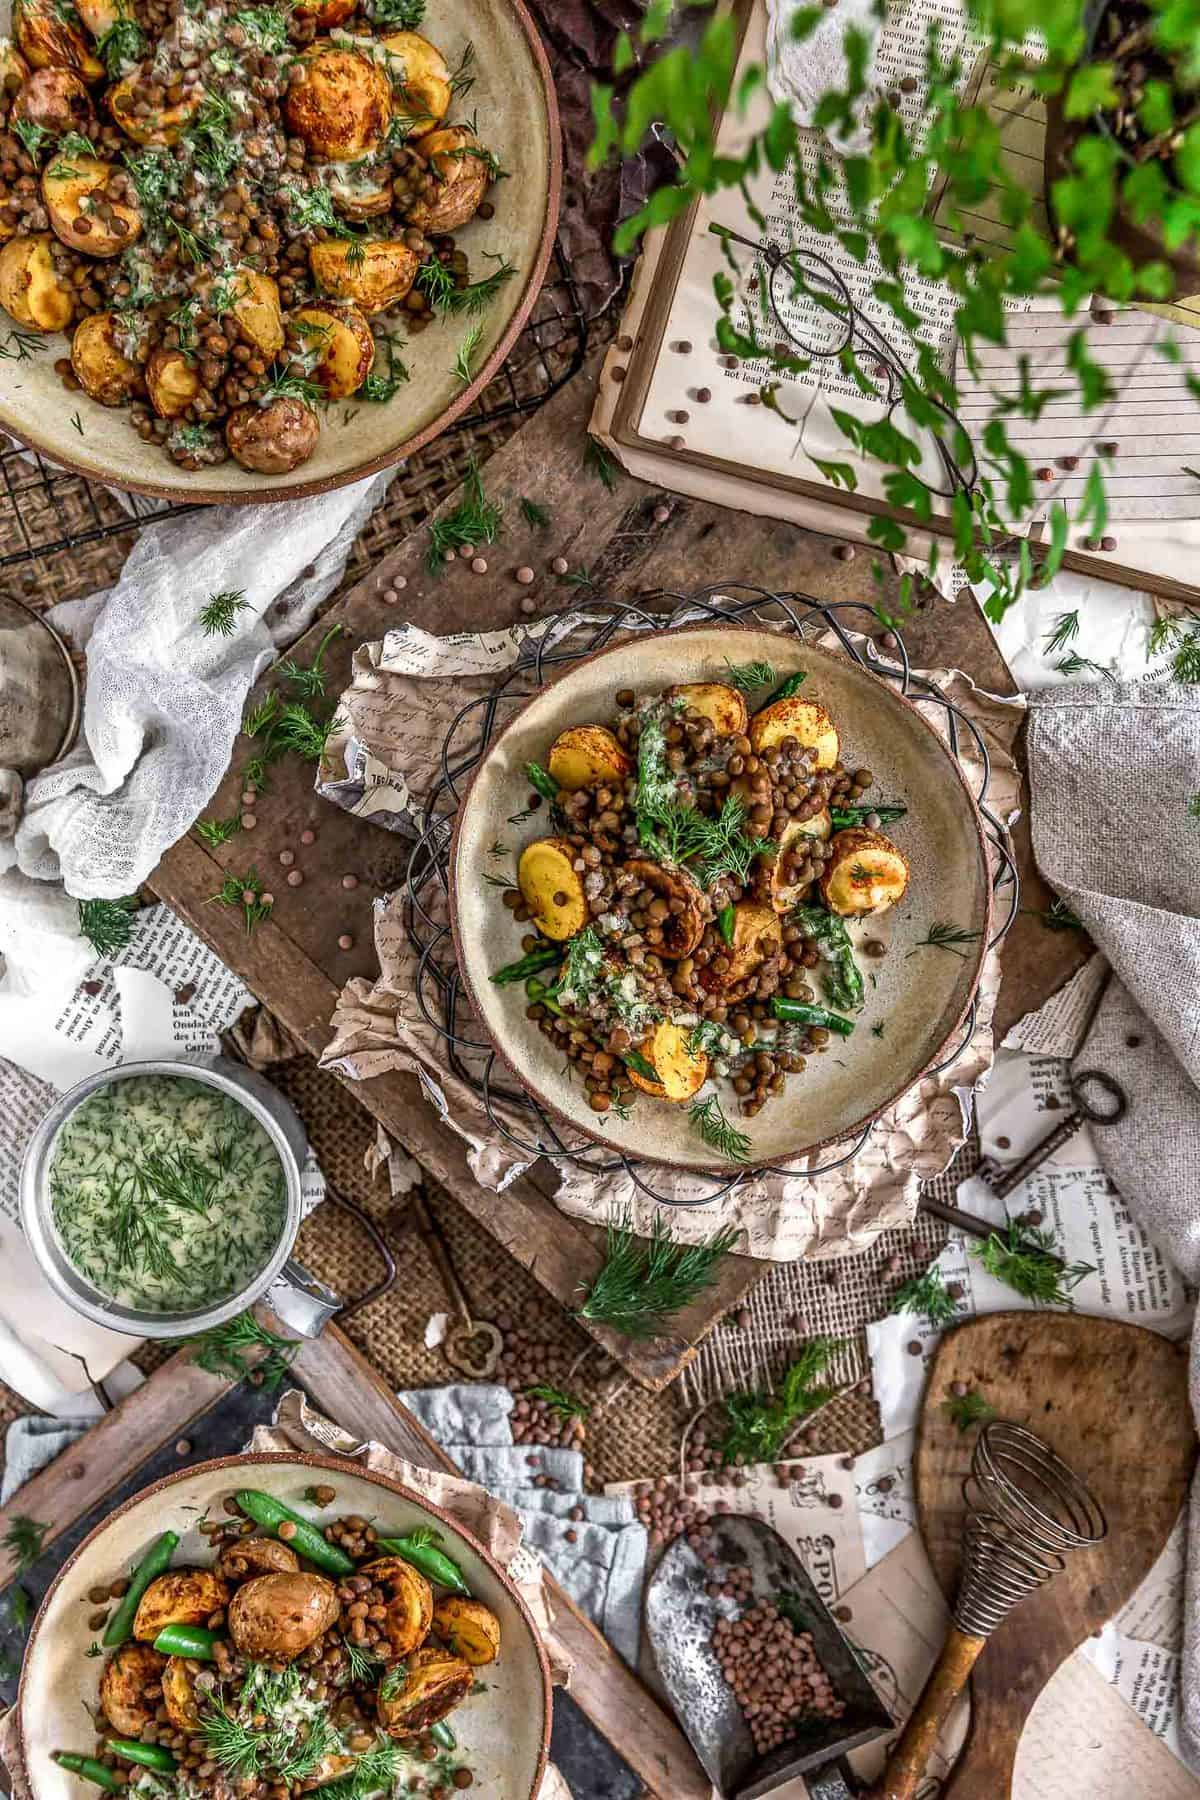 Tablescape of Roasted Potatoes with Seasoned Lentils and Dill Sauce